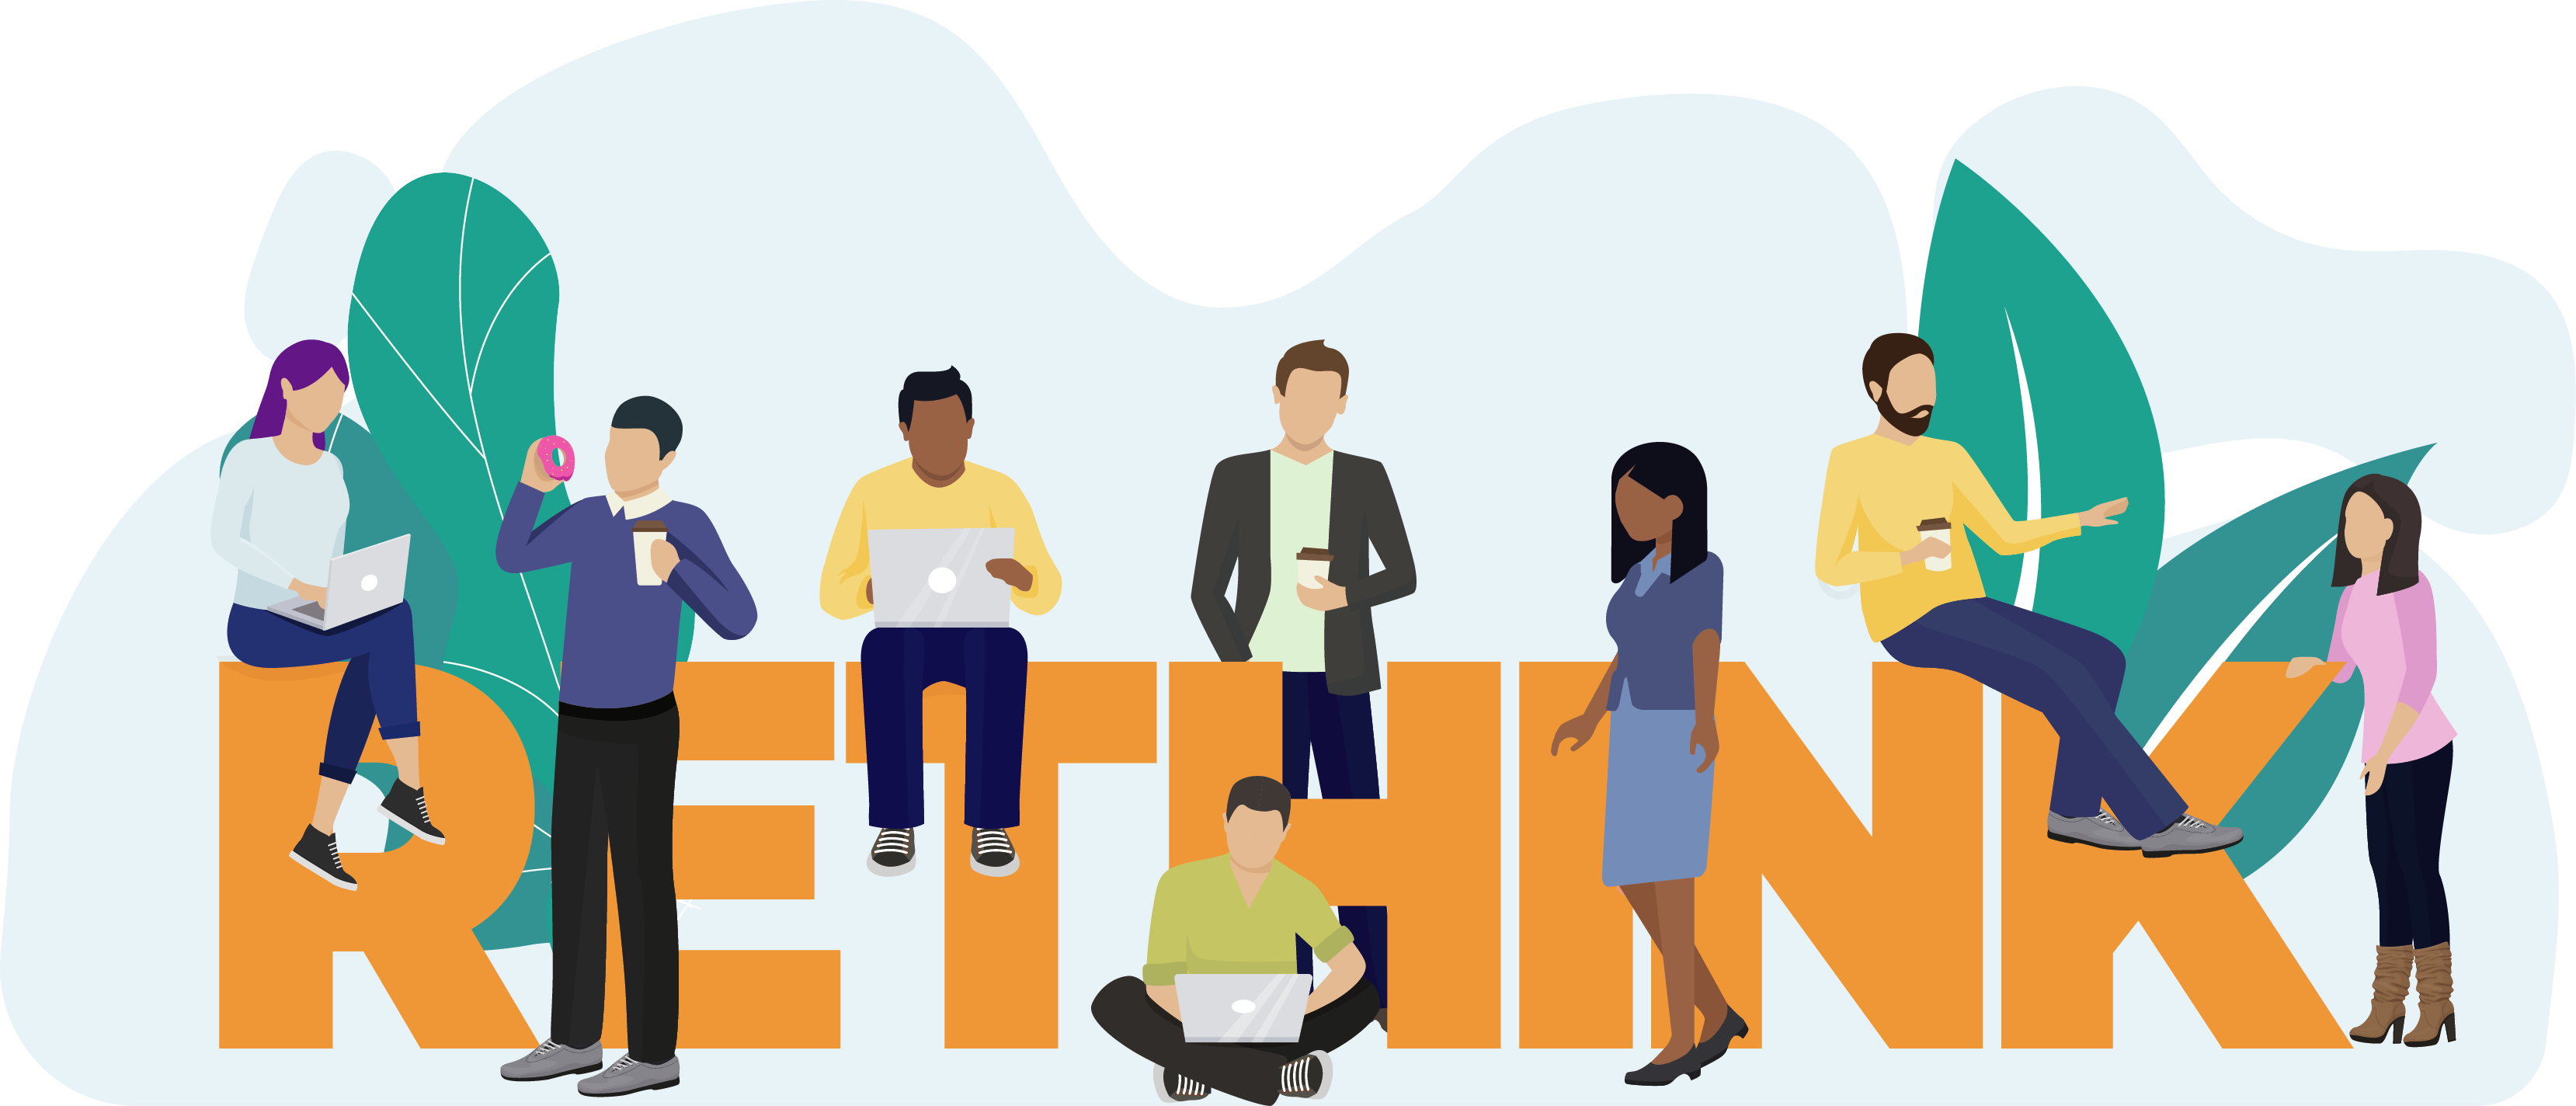 Graphic of Rethink logo with workers collaborating